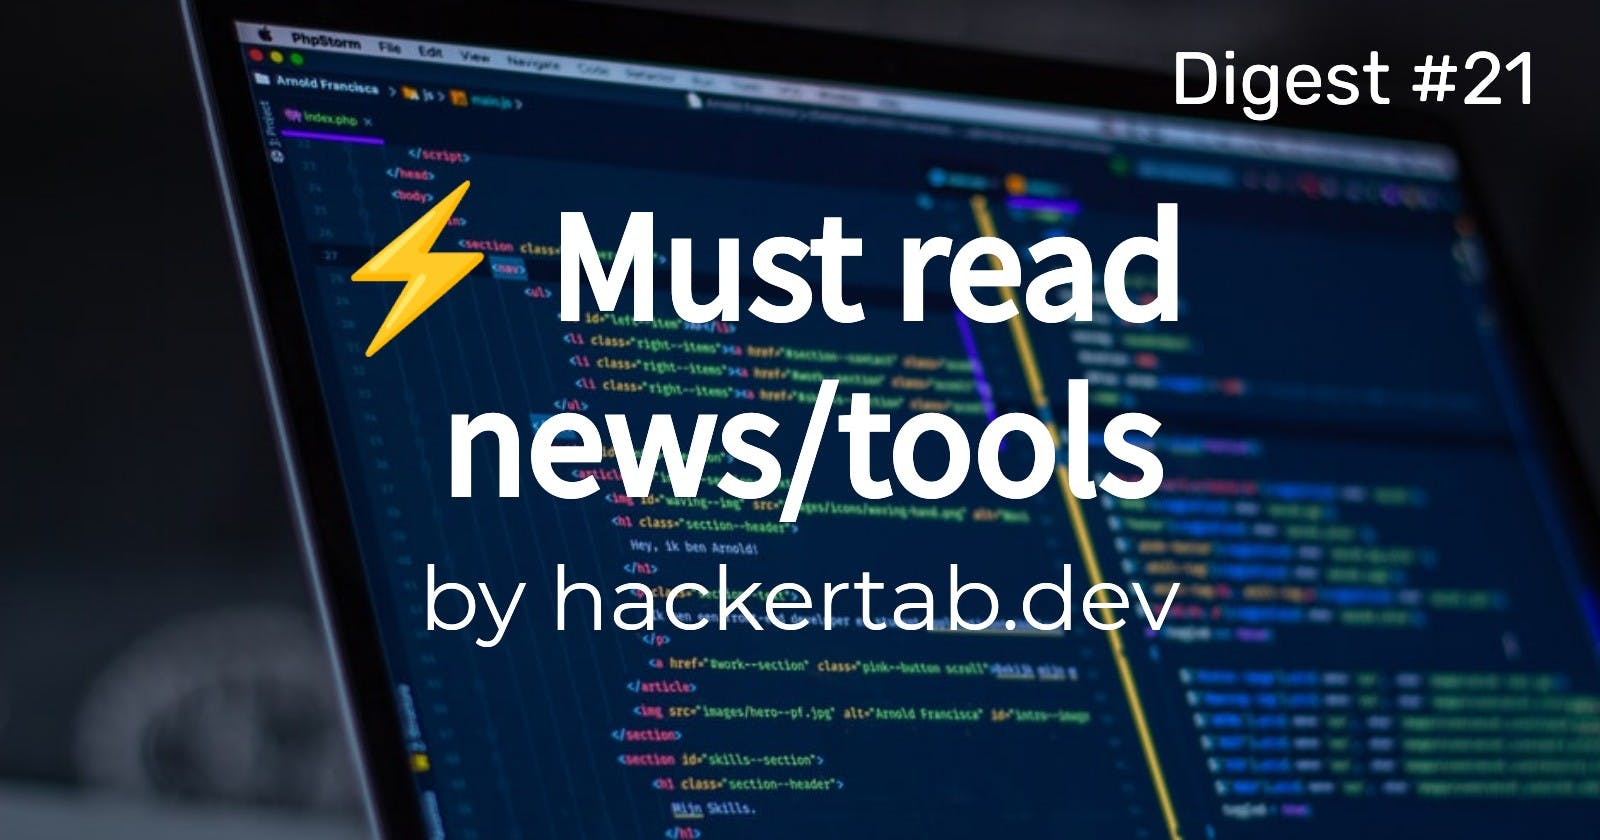 ⚡ Must read Tech news/tools of the day - Digest #21